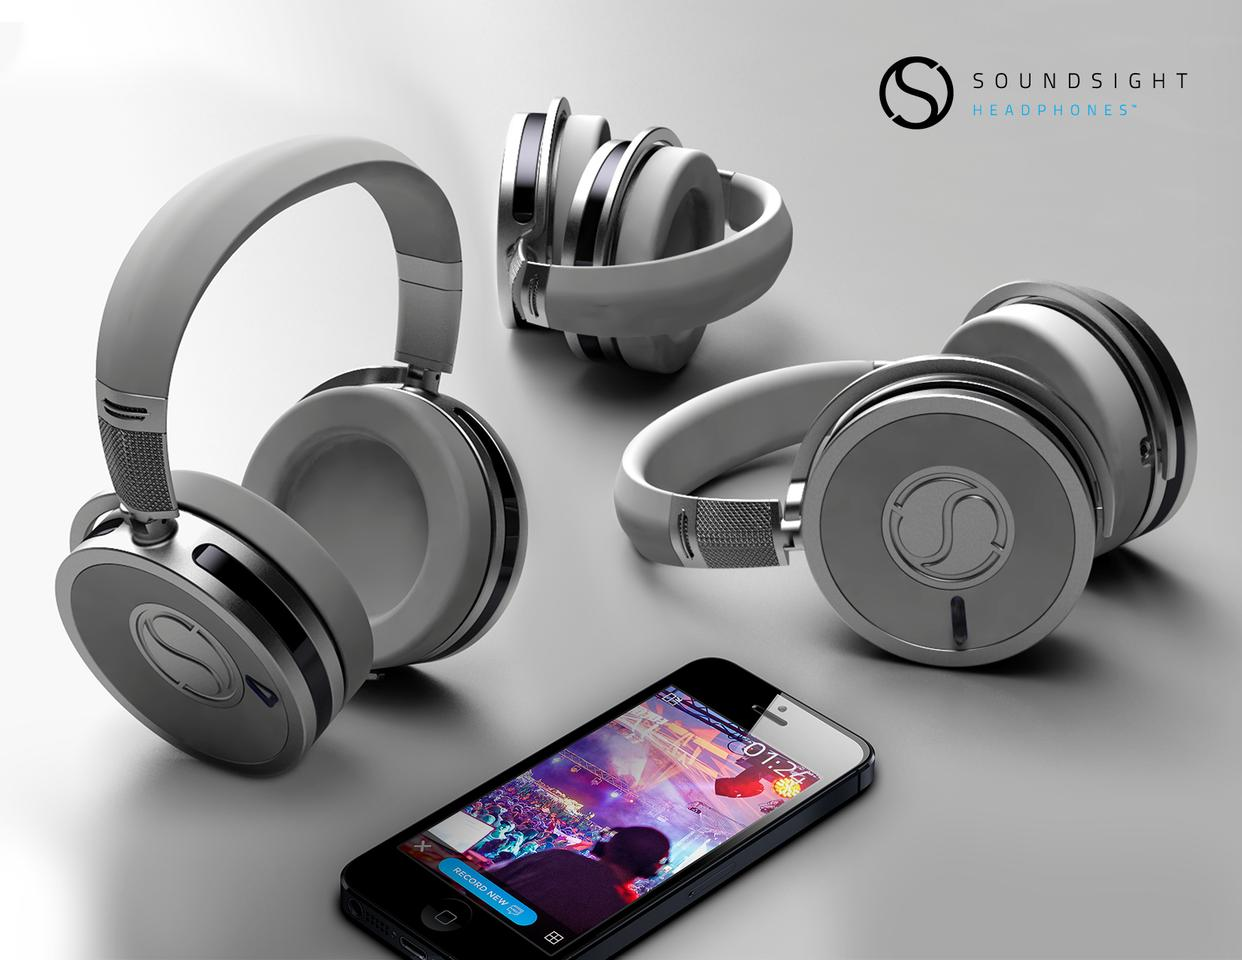 The wireless headphones have been designed for use alongside Android and iOS devices via the Soundsight mobile app